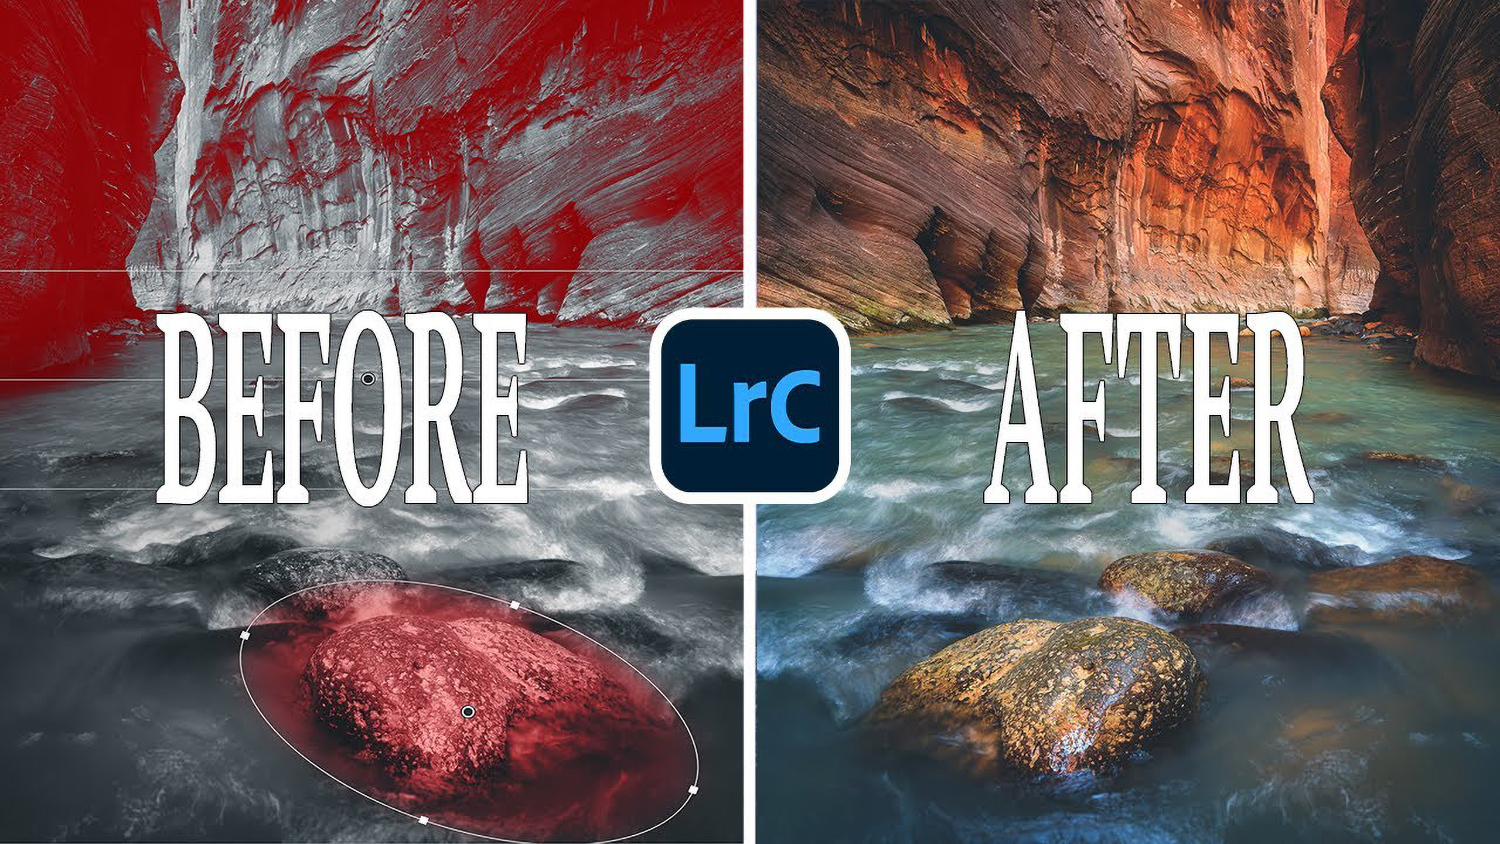 5 Easy Editing Hacks to Improve Your Landscape Photos (VIDEO) - OverStockPhoto